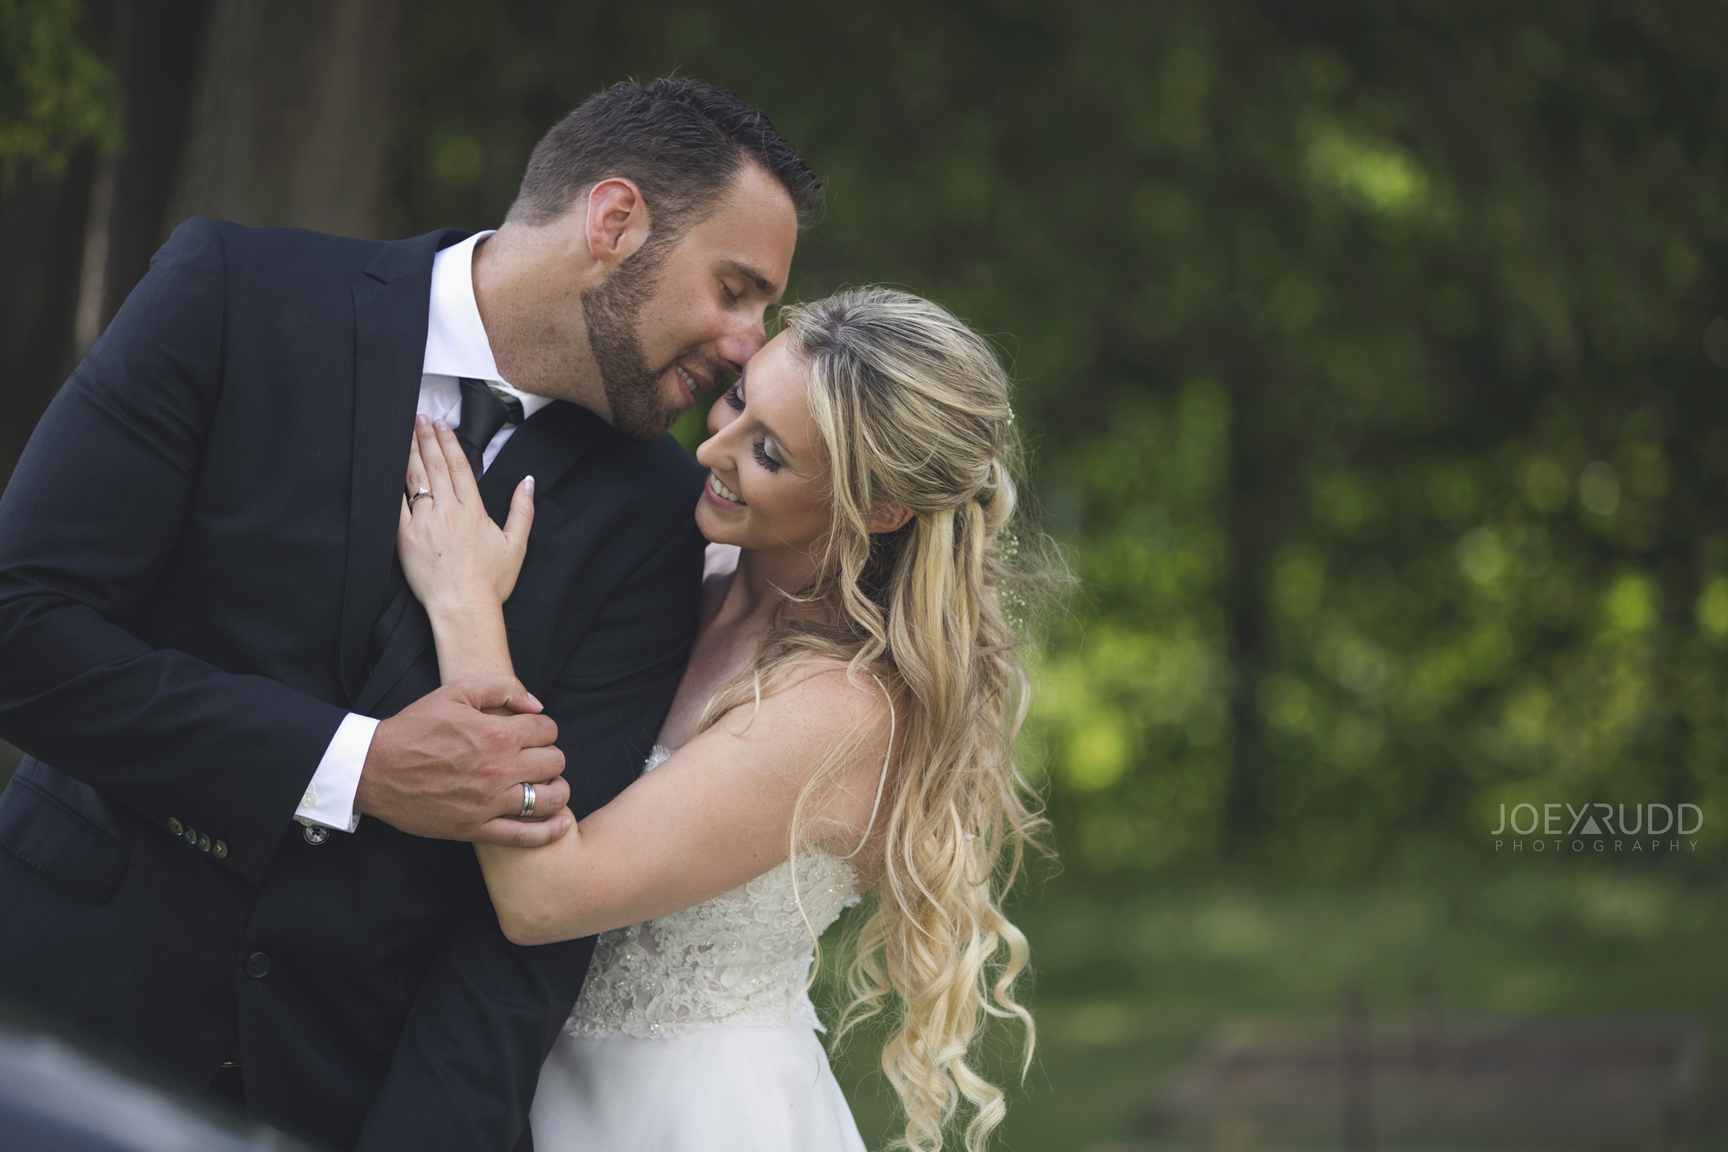 Calabogie Wedding at Barnet Park by Ottawa Wedding Photographer Joey Rudd Photography Love Idea